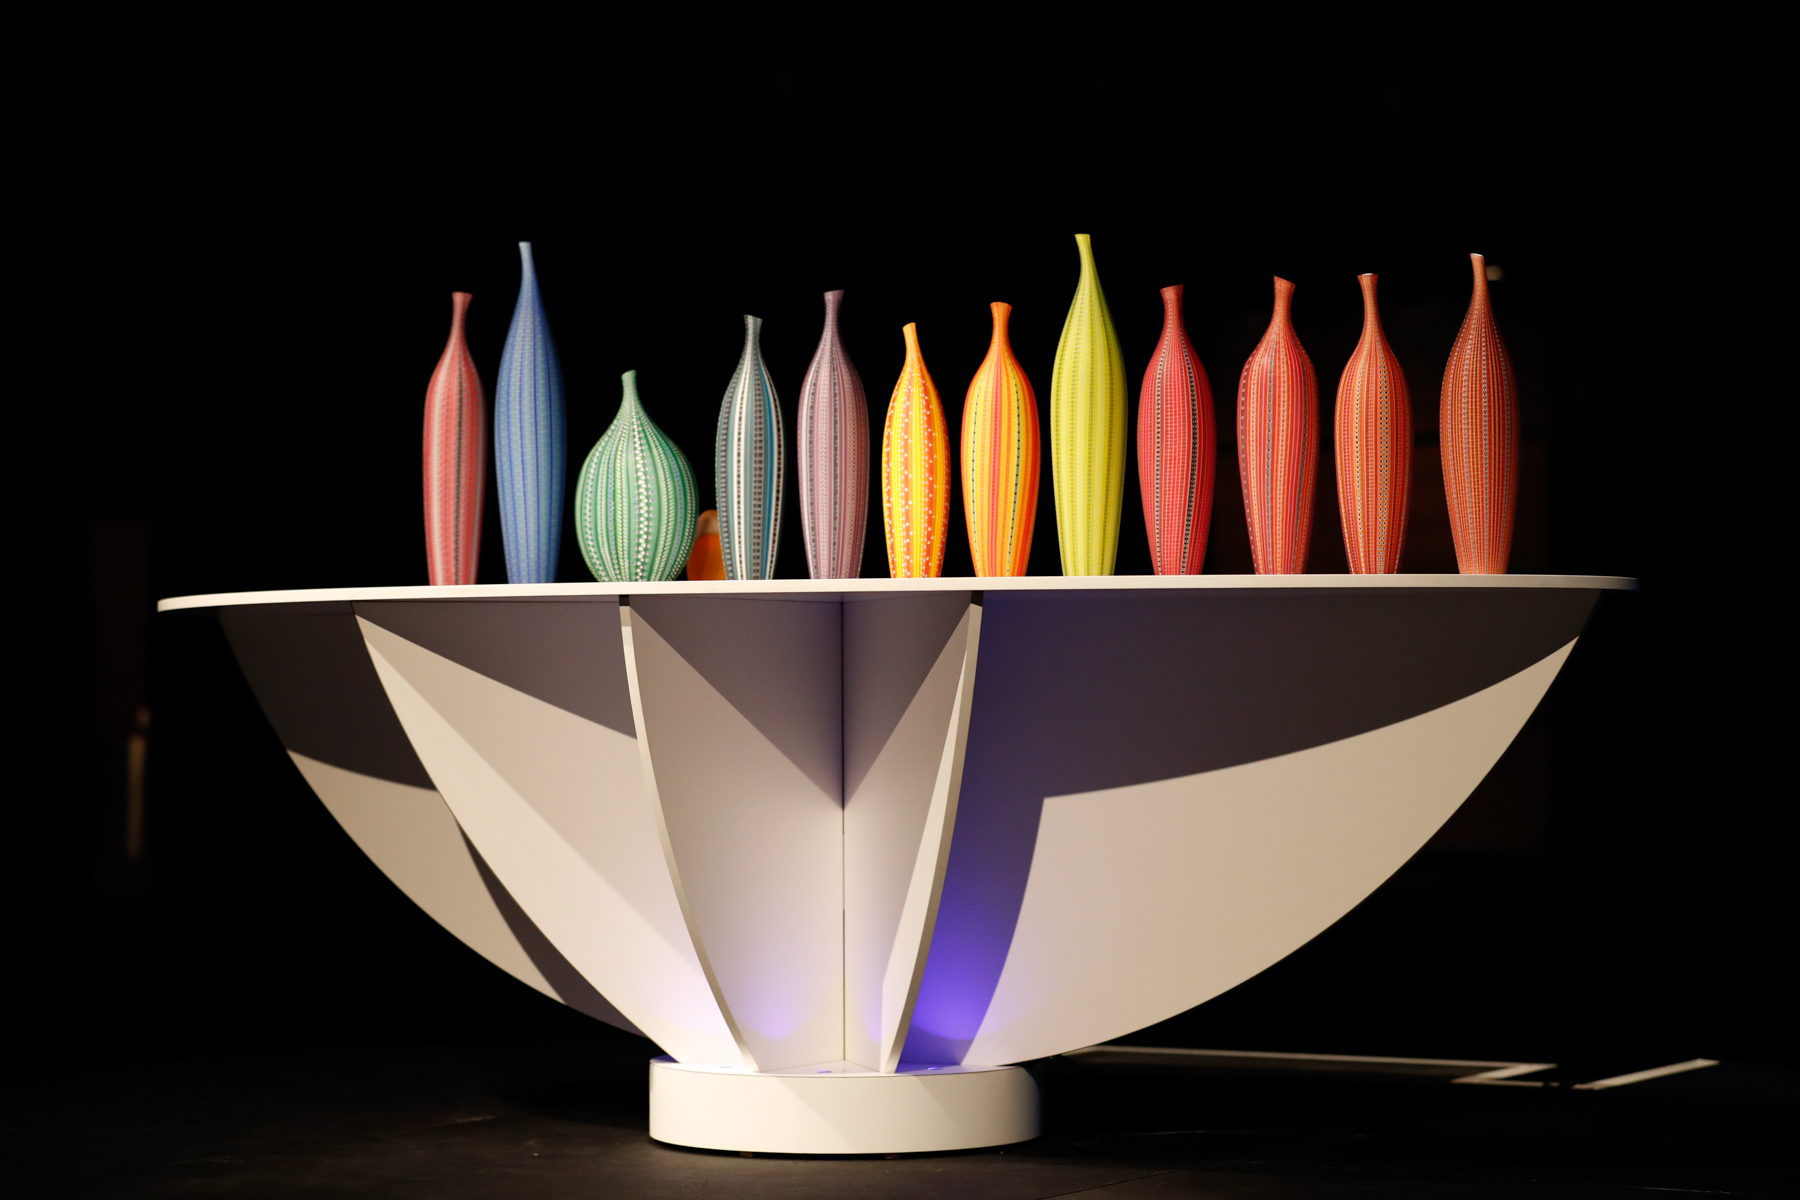 APSA award vessels by Joanna Bone